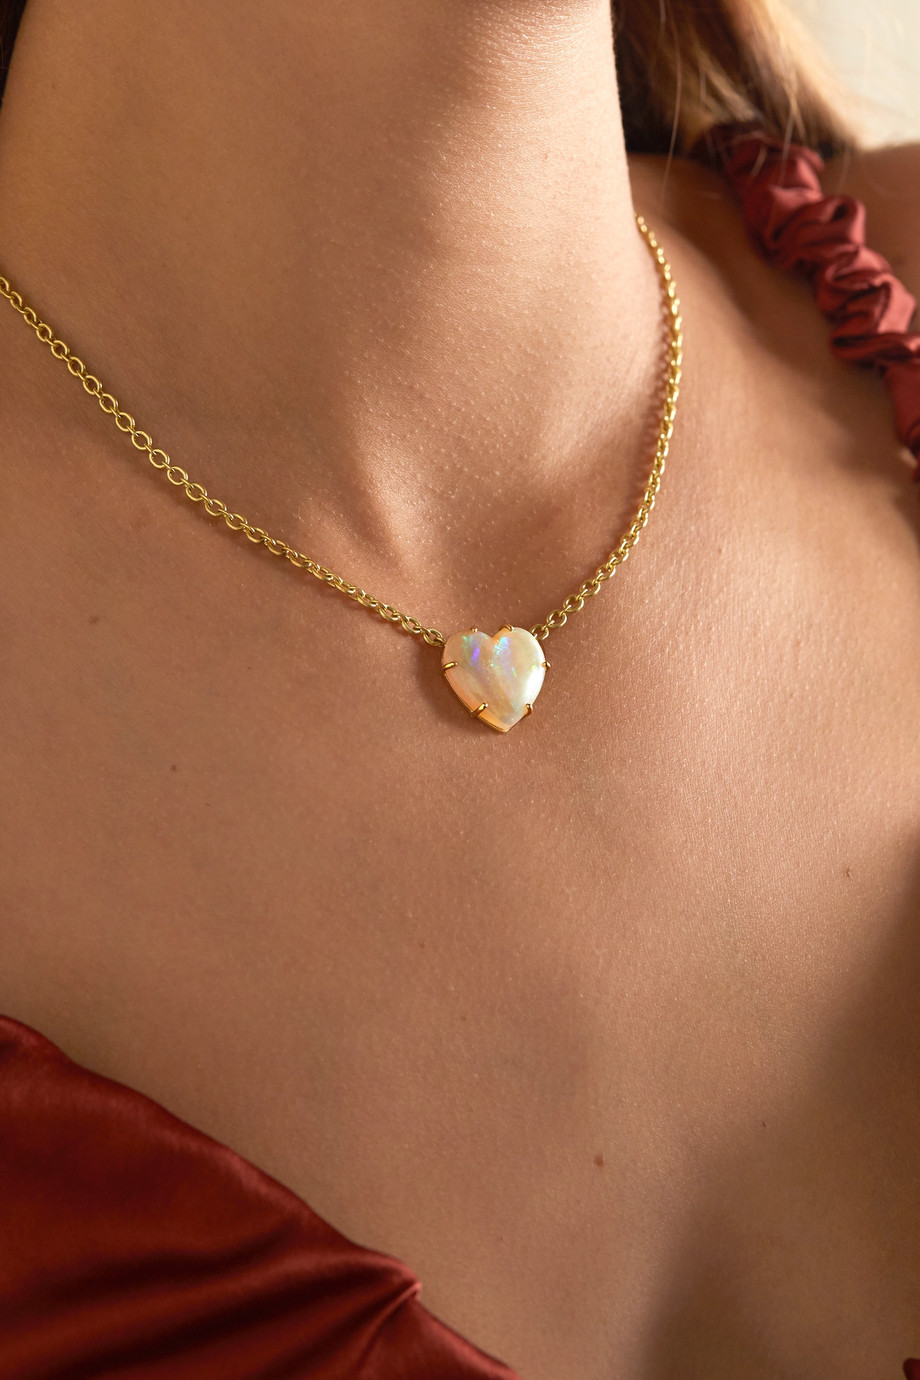 Irene Neuwirth Love 18-karat gold opal necklace